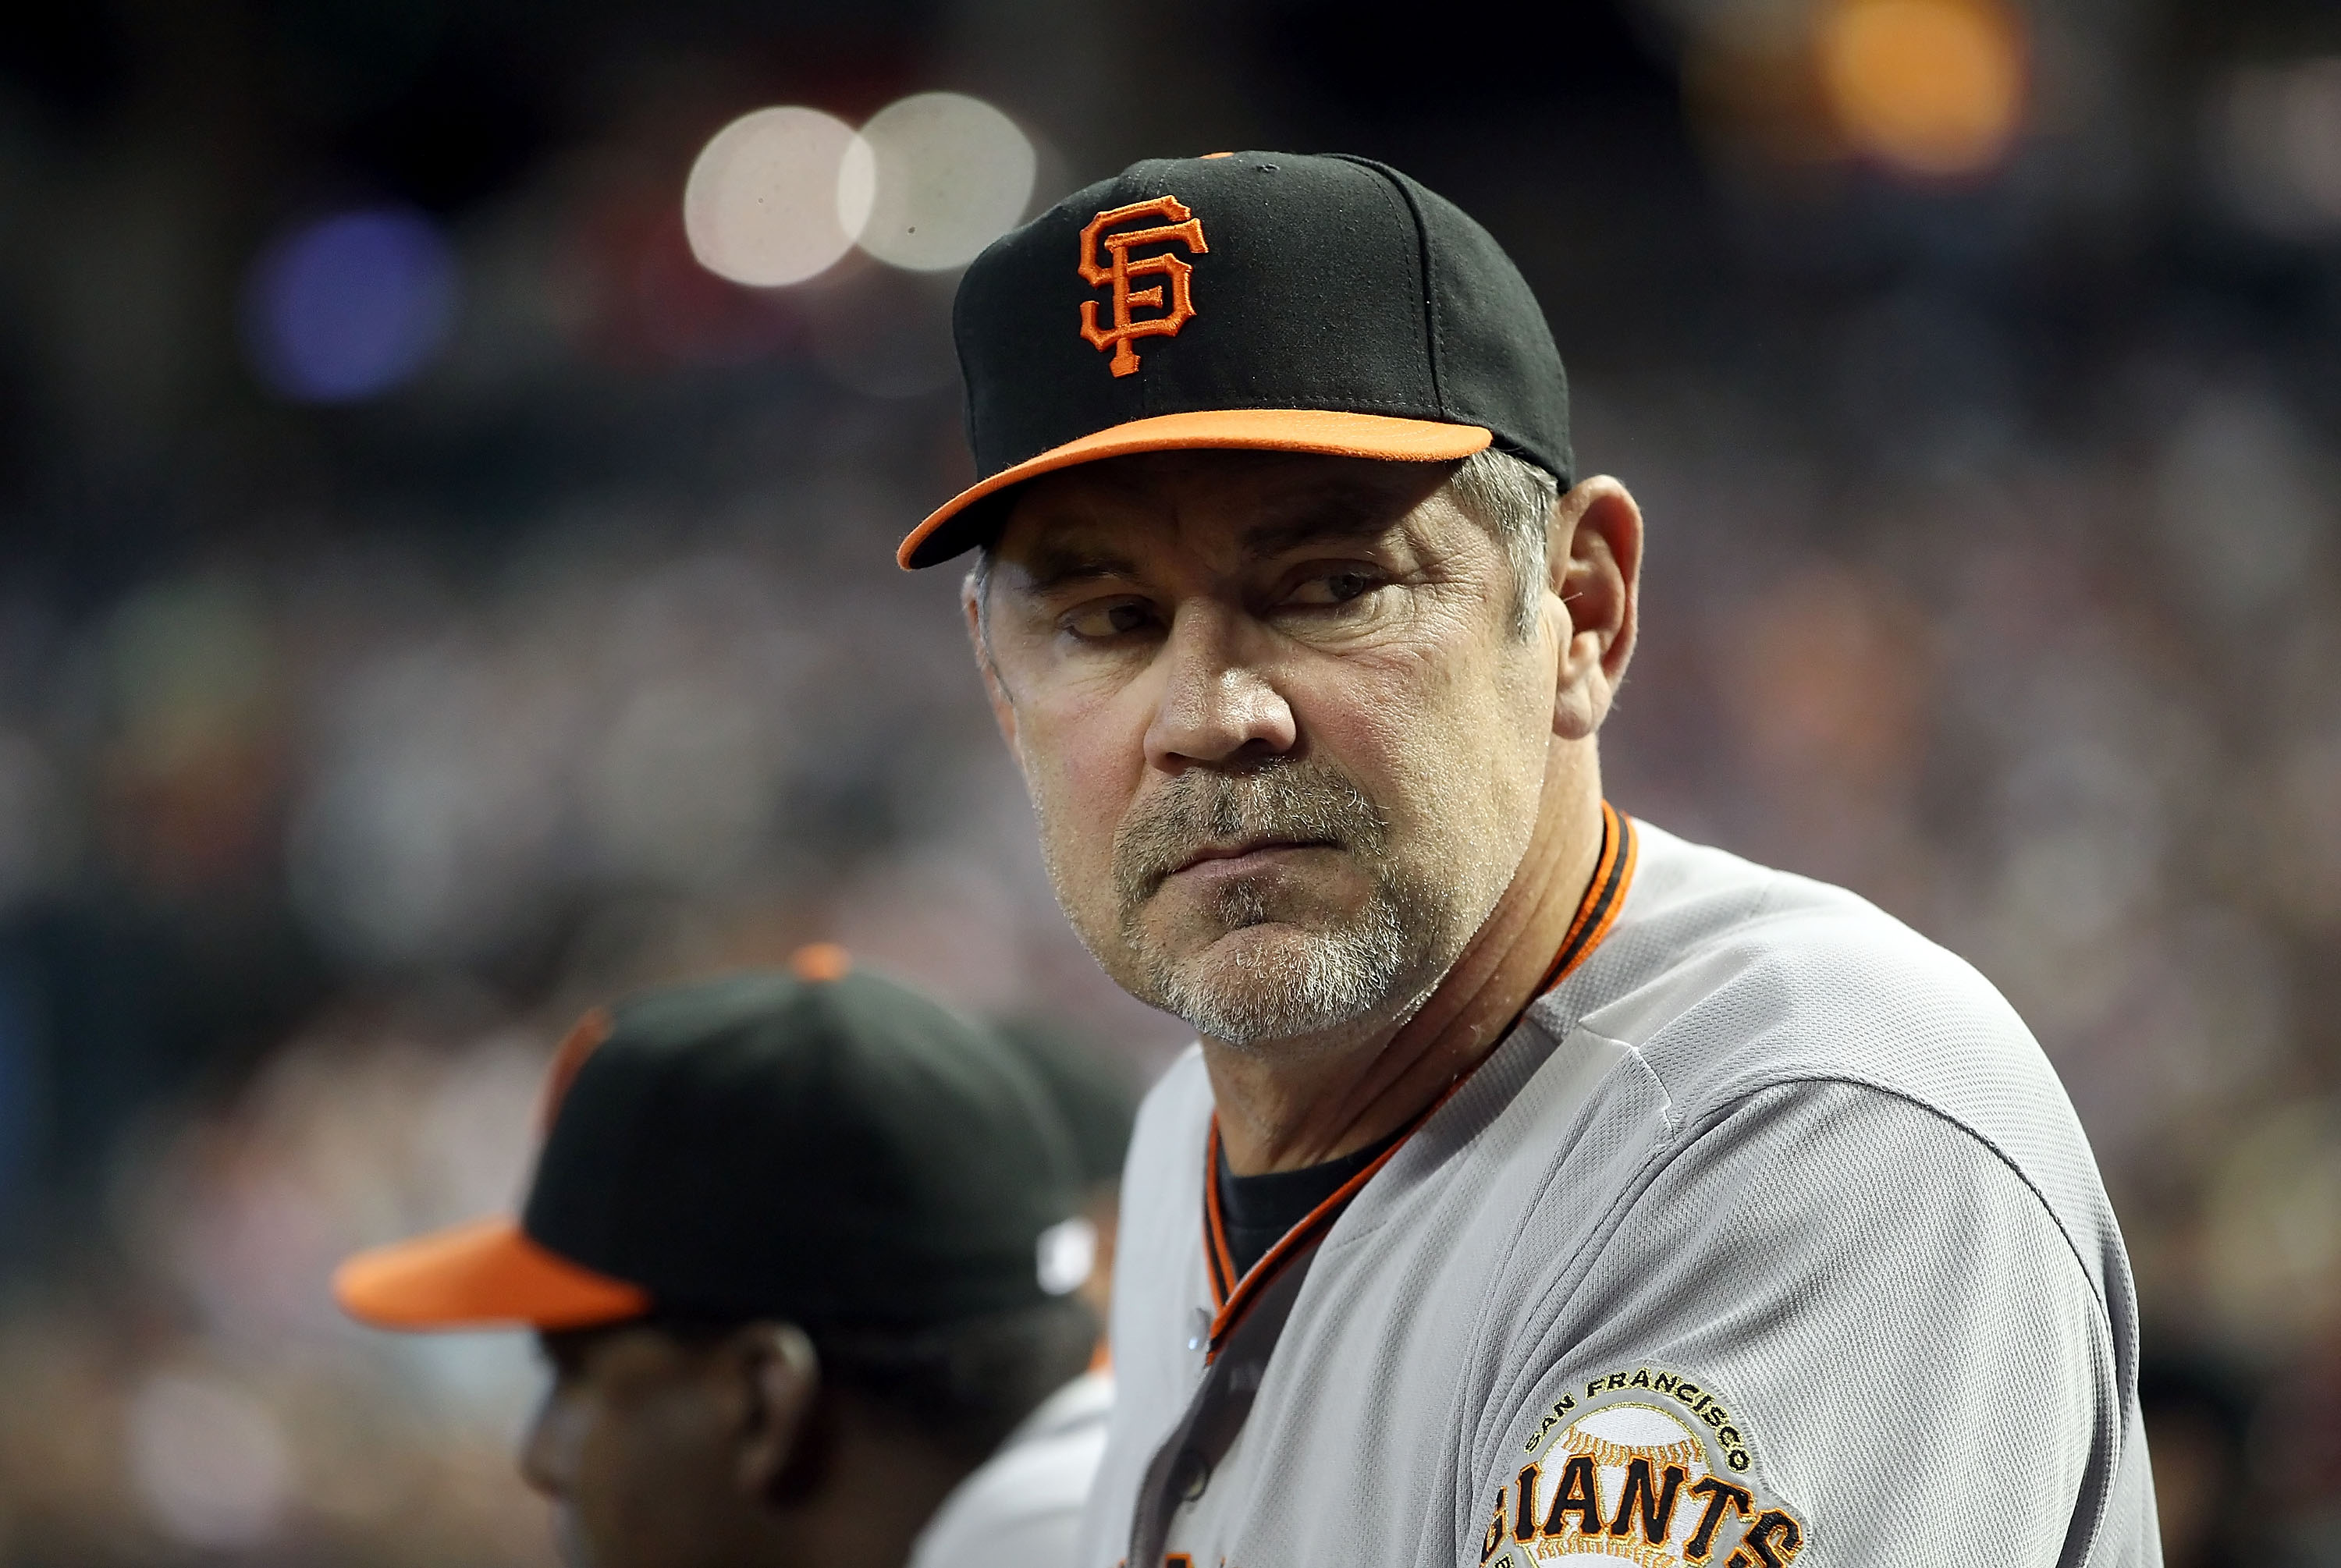 Bruce Bochy has navigated stormy waters for the Giants during the first five weeks of 2011